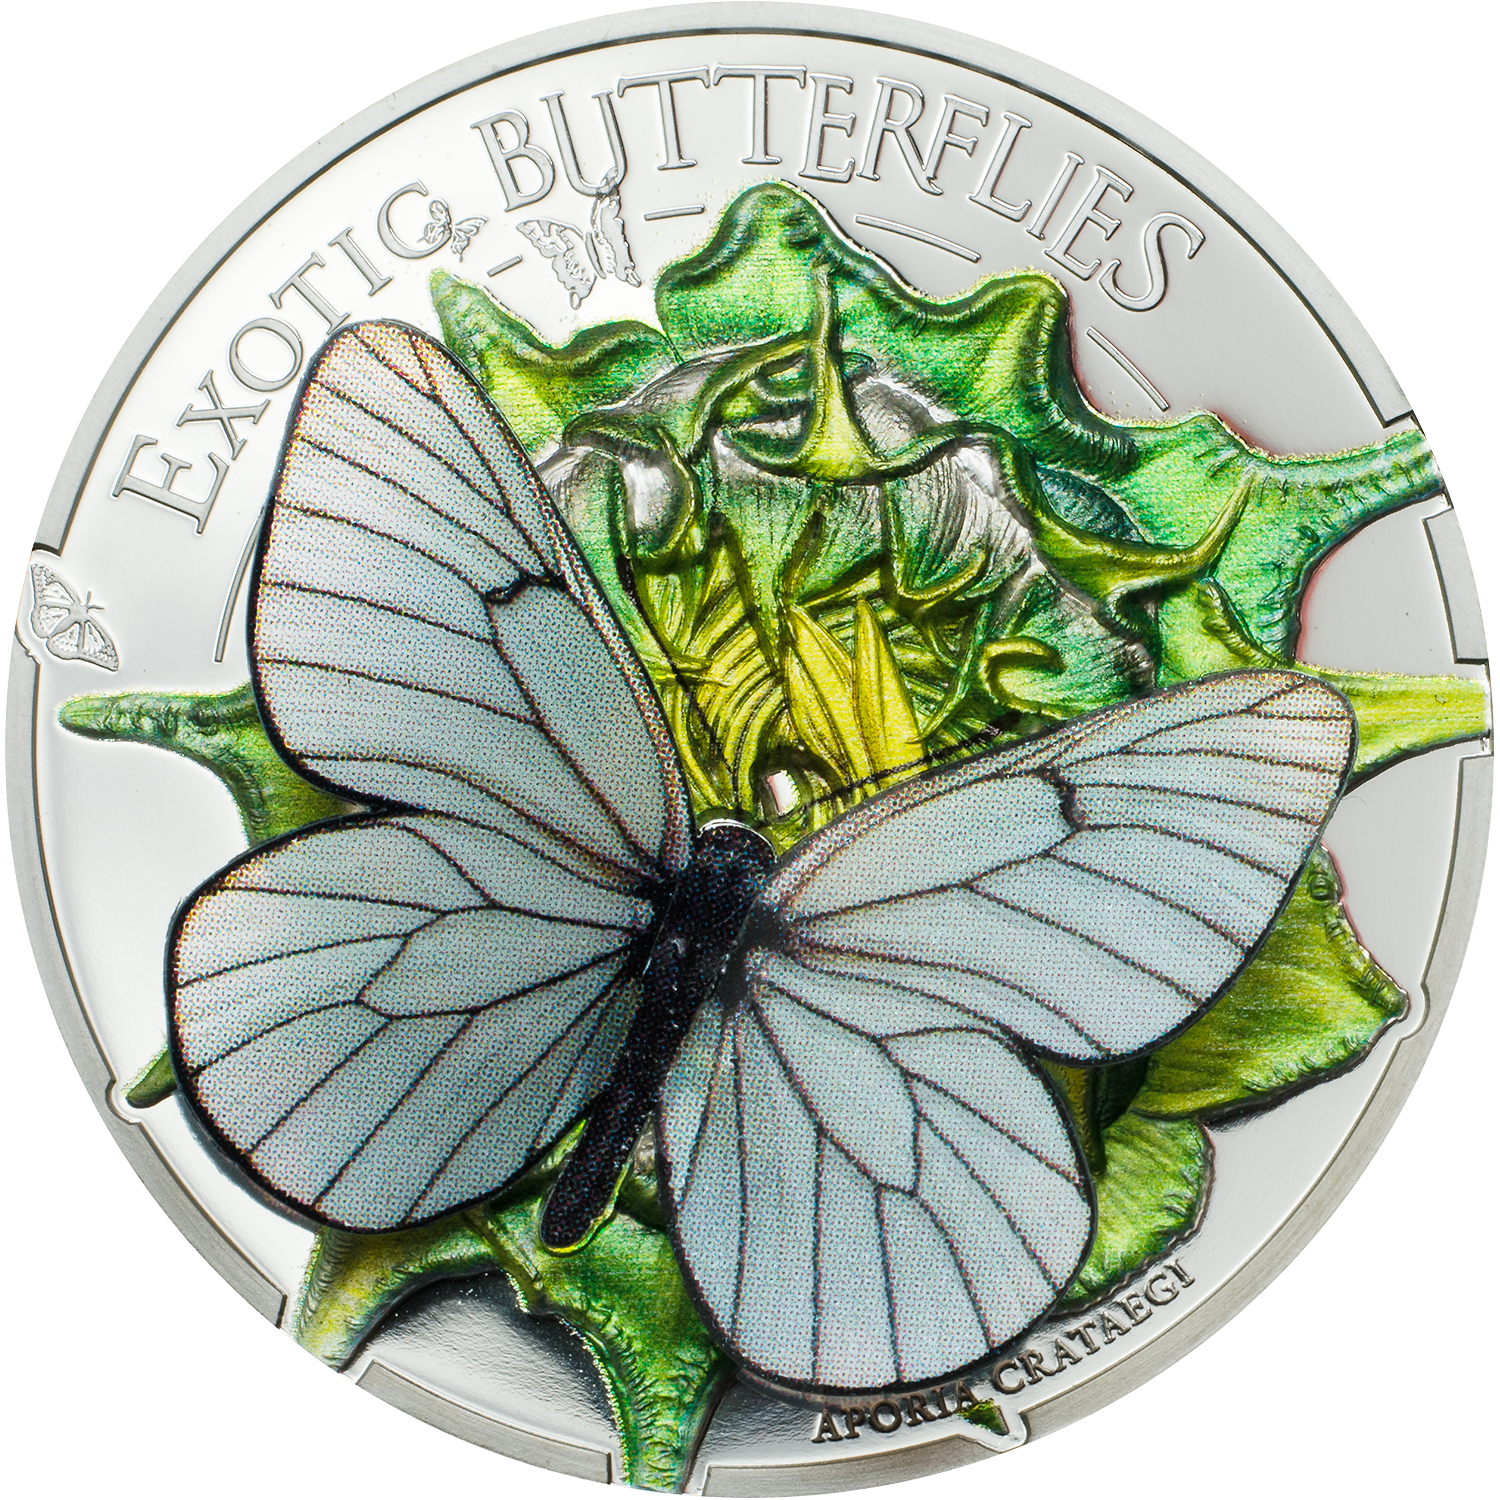 Mongolia - 2017 - 500 Togrog - Butterflies in 3D BLACK-VEINED WHITE